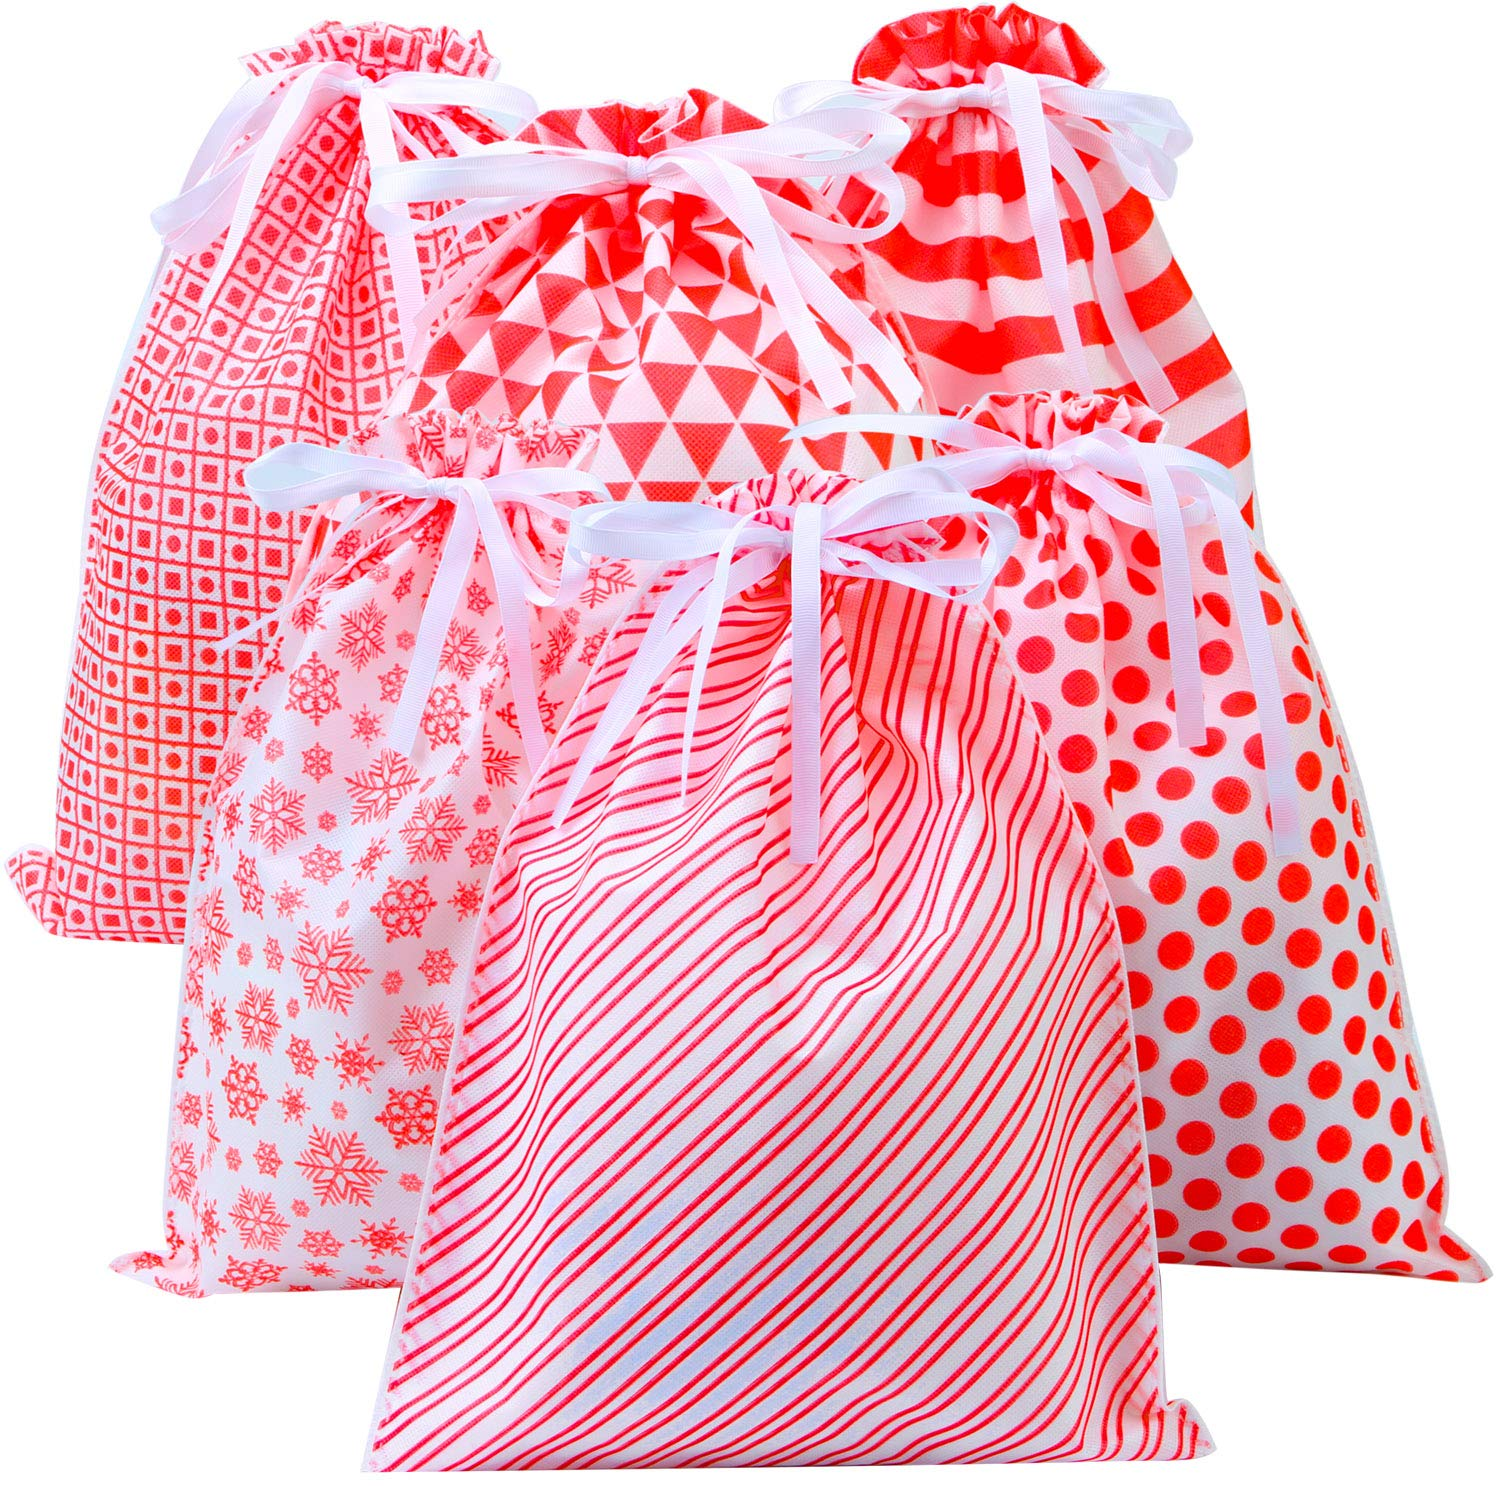 Party Favors Bags or Christmas Party Celebrations Non-Woven gift Drawstring Bag